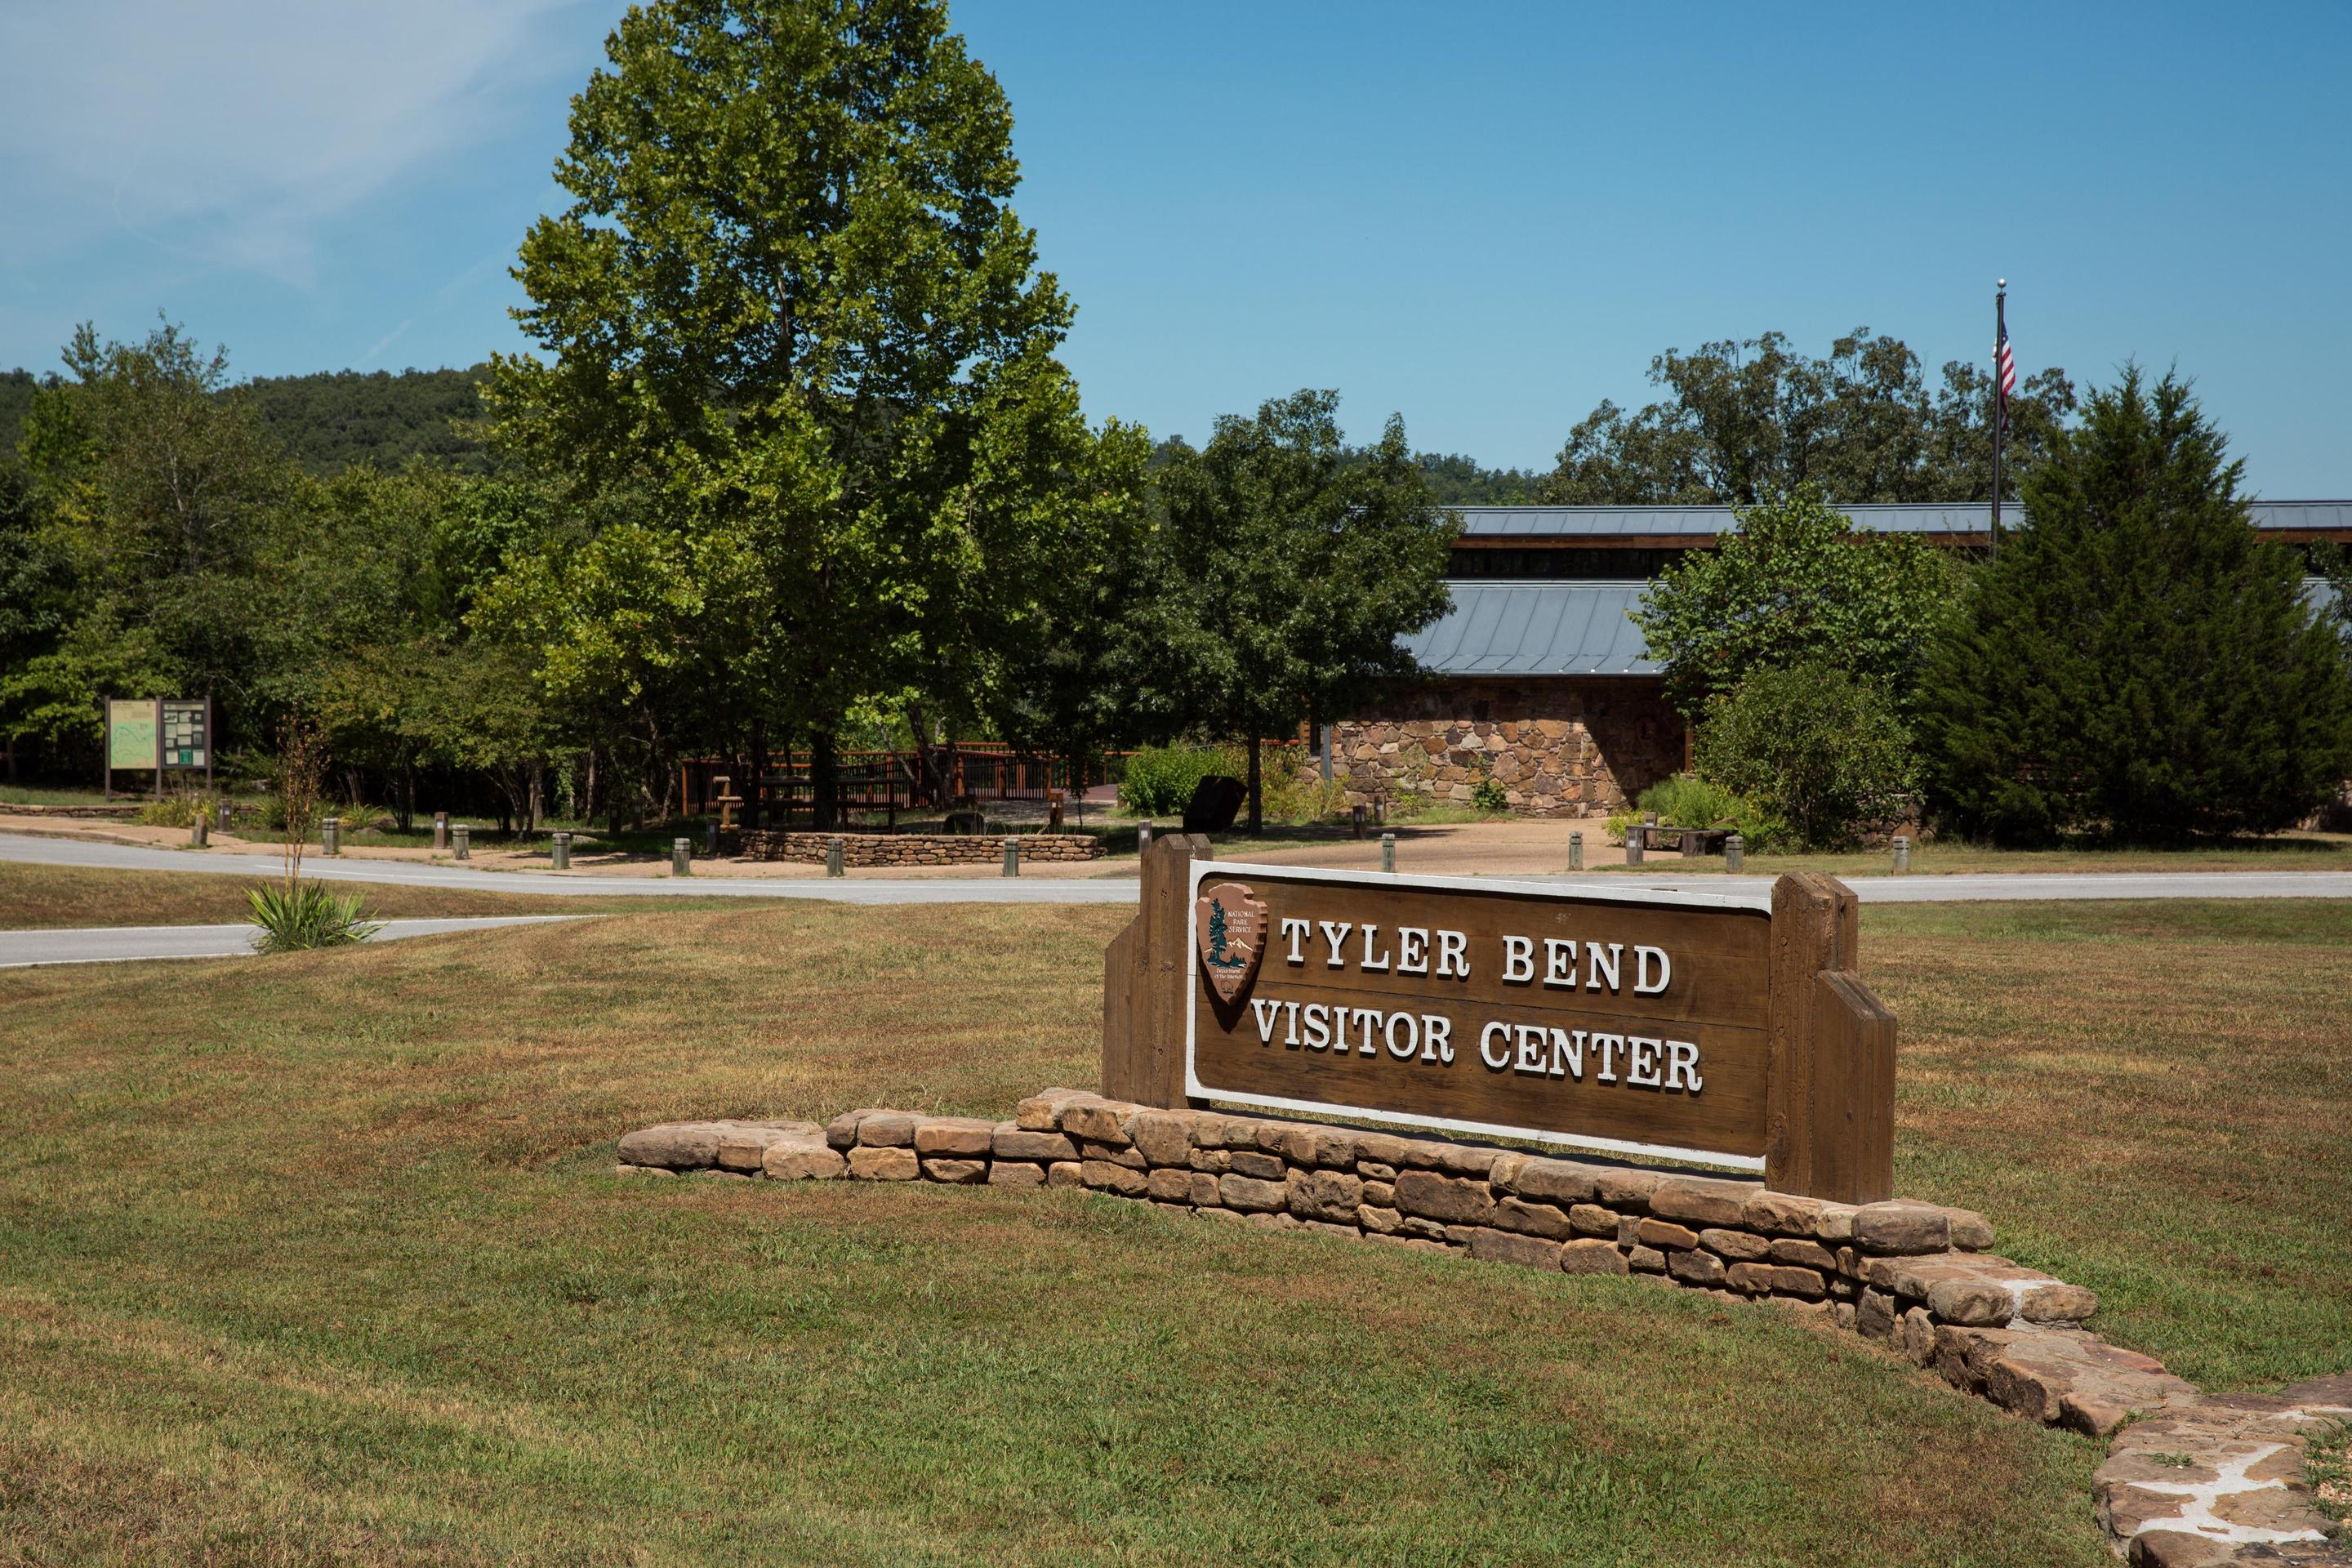 Tyler Bend Visitor Centerhe Tyler Bend Visitor Center is a great place to start planning your visit to Buffalo National River.